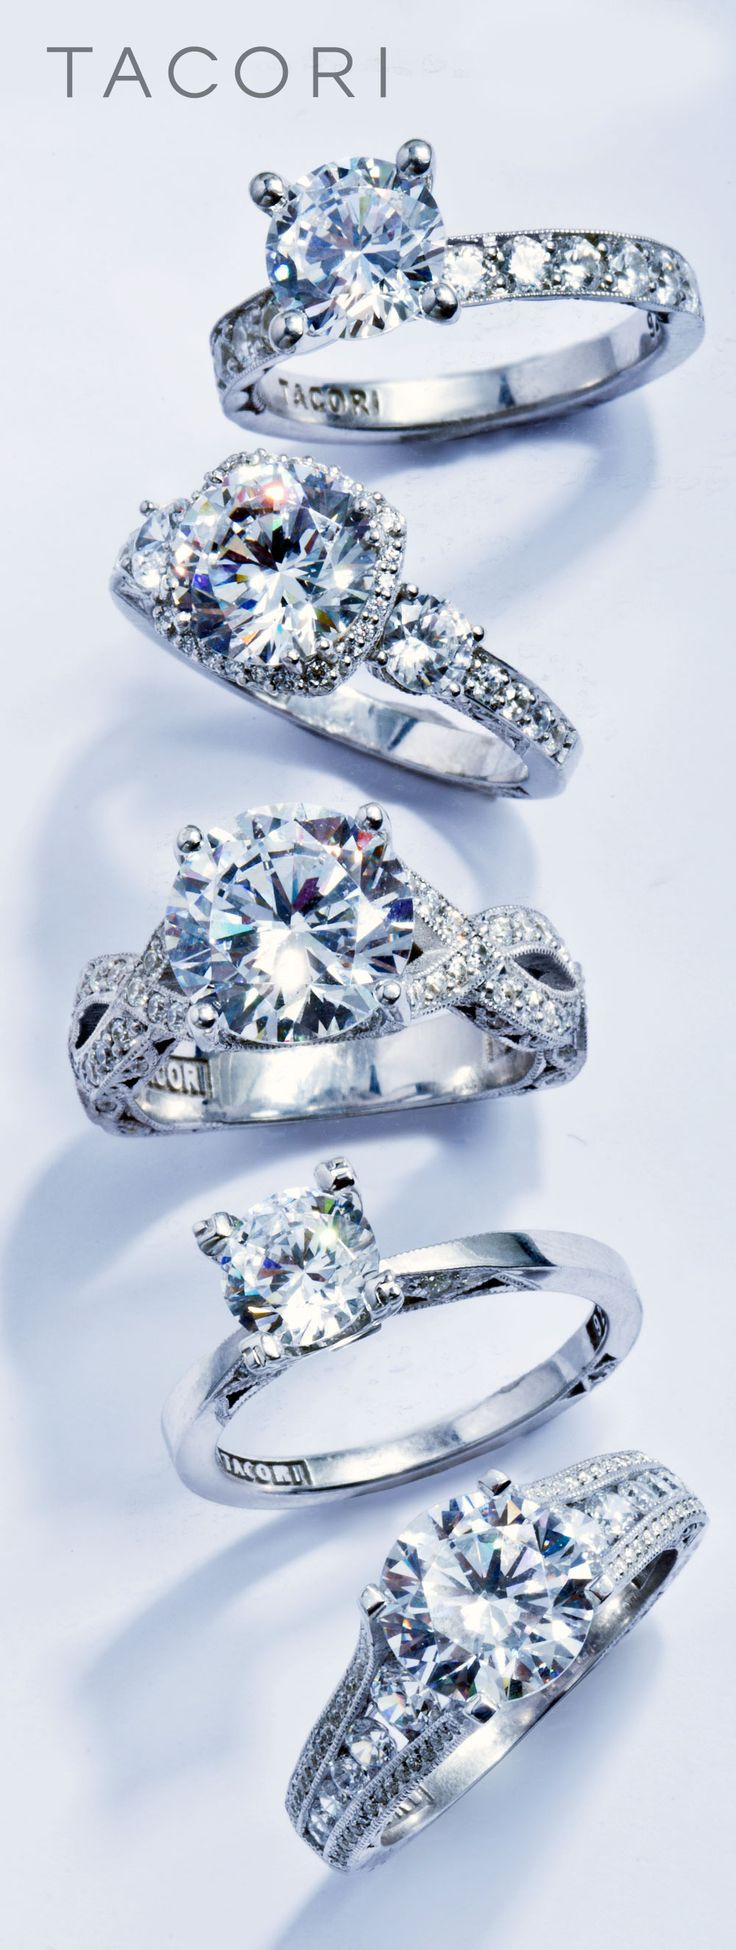 Find This Pin And More On Tacori Engagement Rings